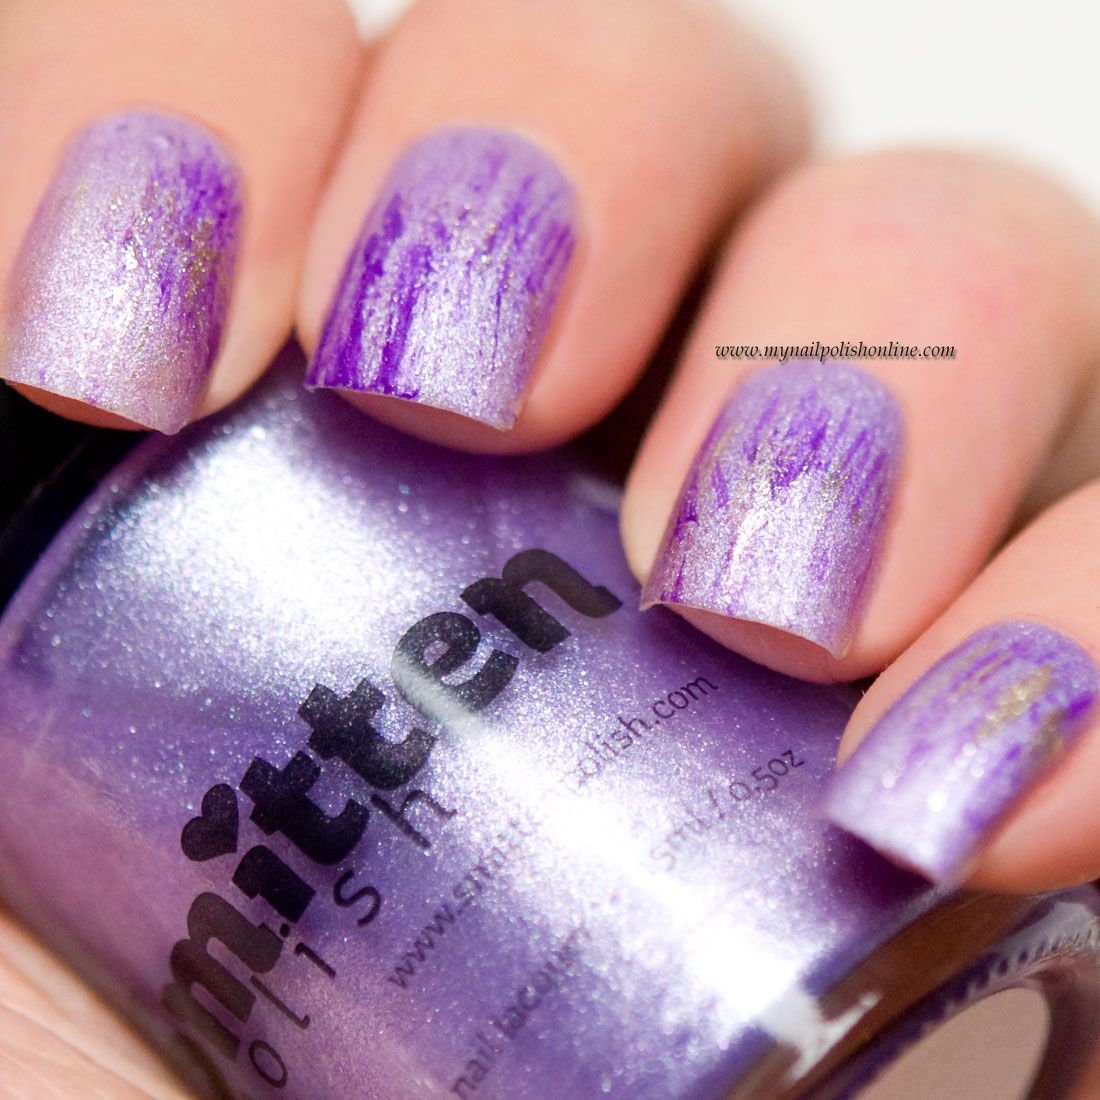 31DC2015 - Day 6 Violet nails - http://www.mynailpolishonline.com/2015/09/nail-art-2/31dc2015-day-6-violet-nails/